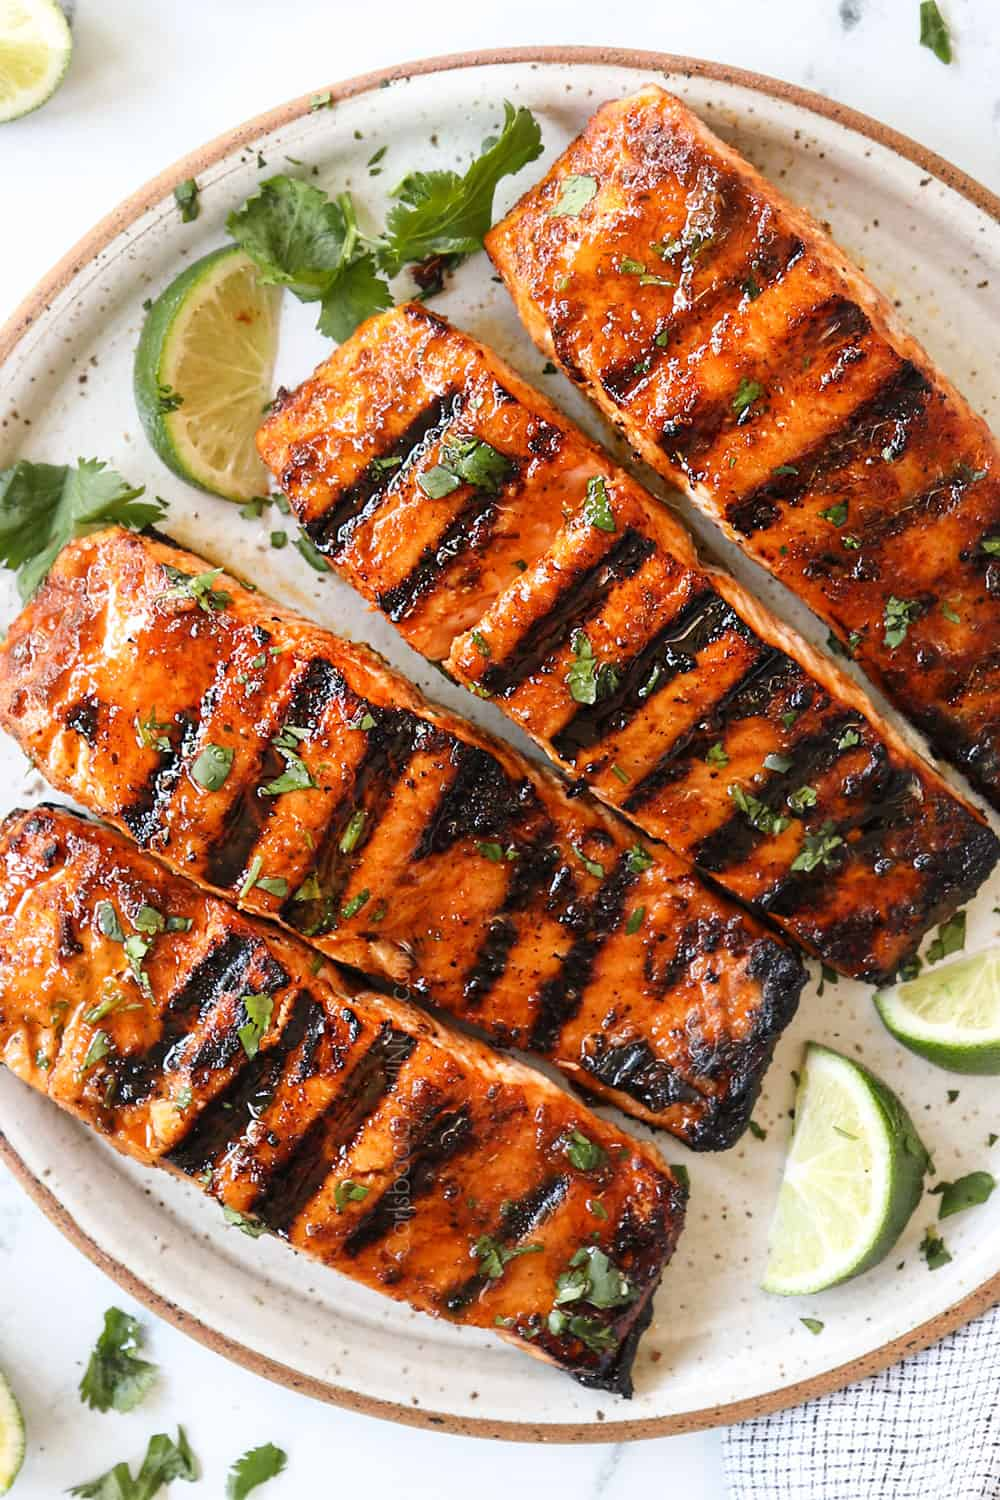 top view of grilled salmon on a plate